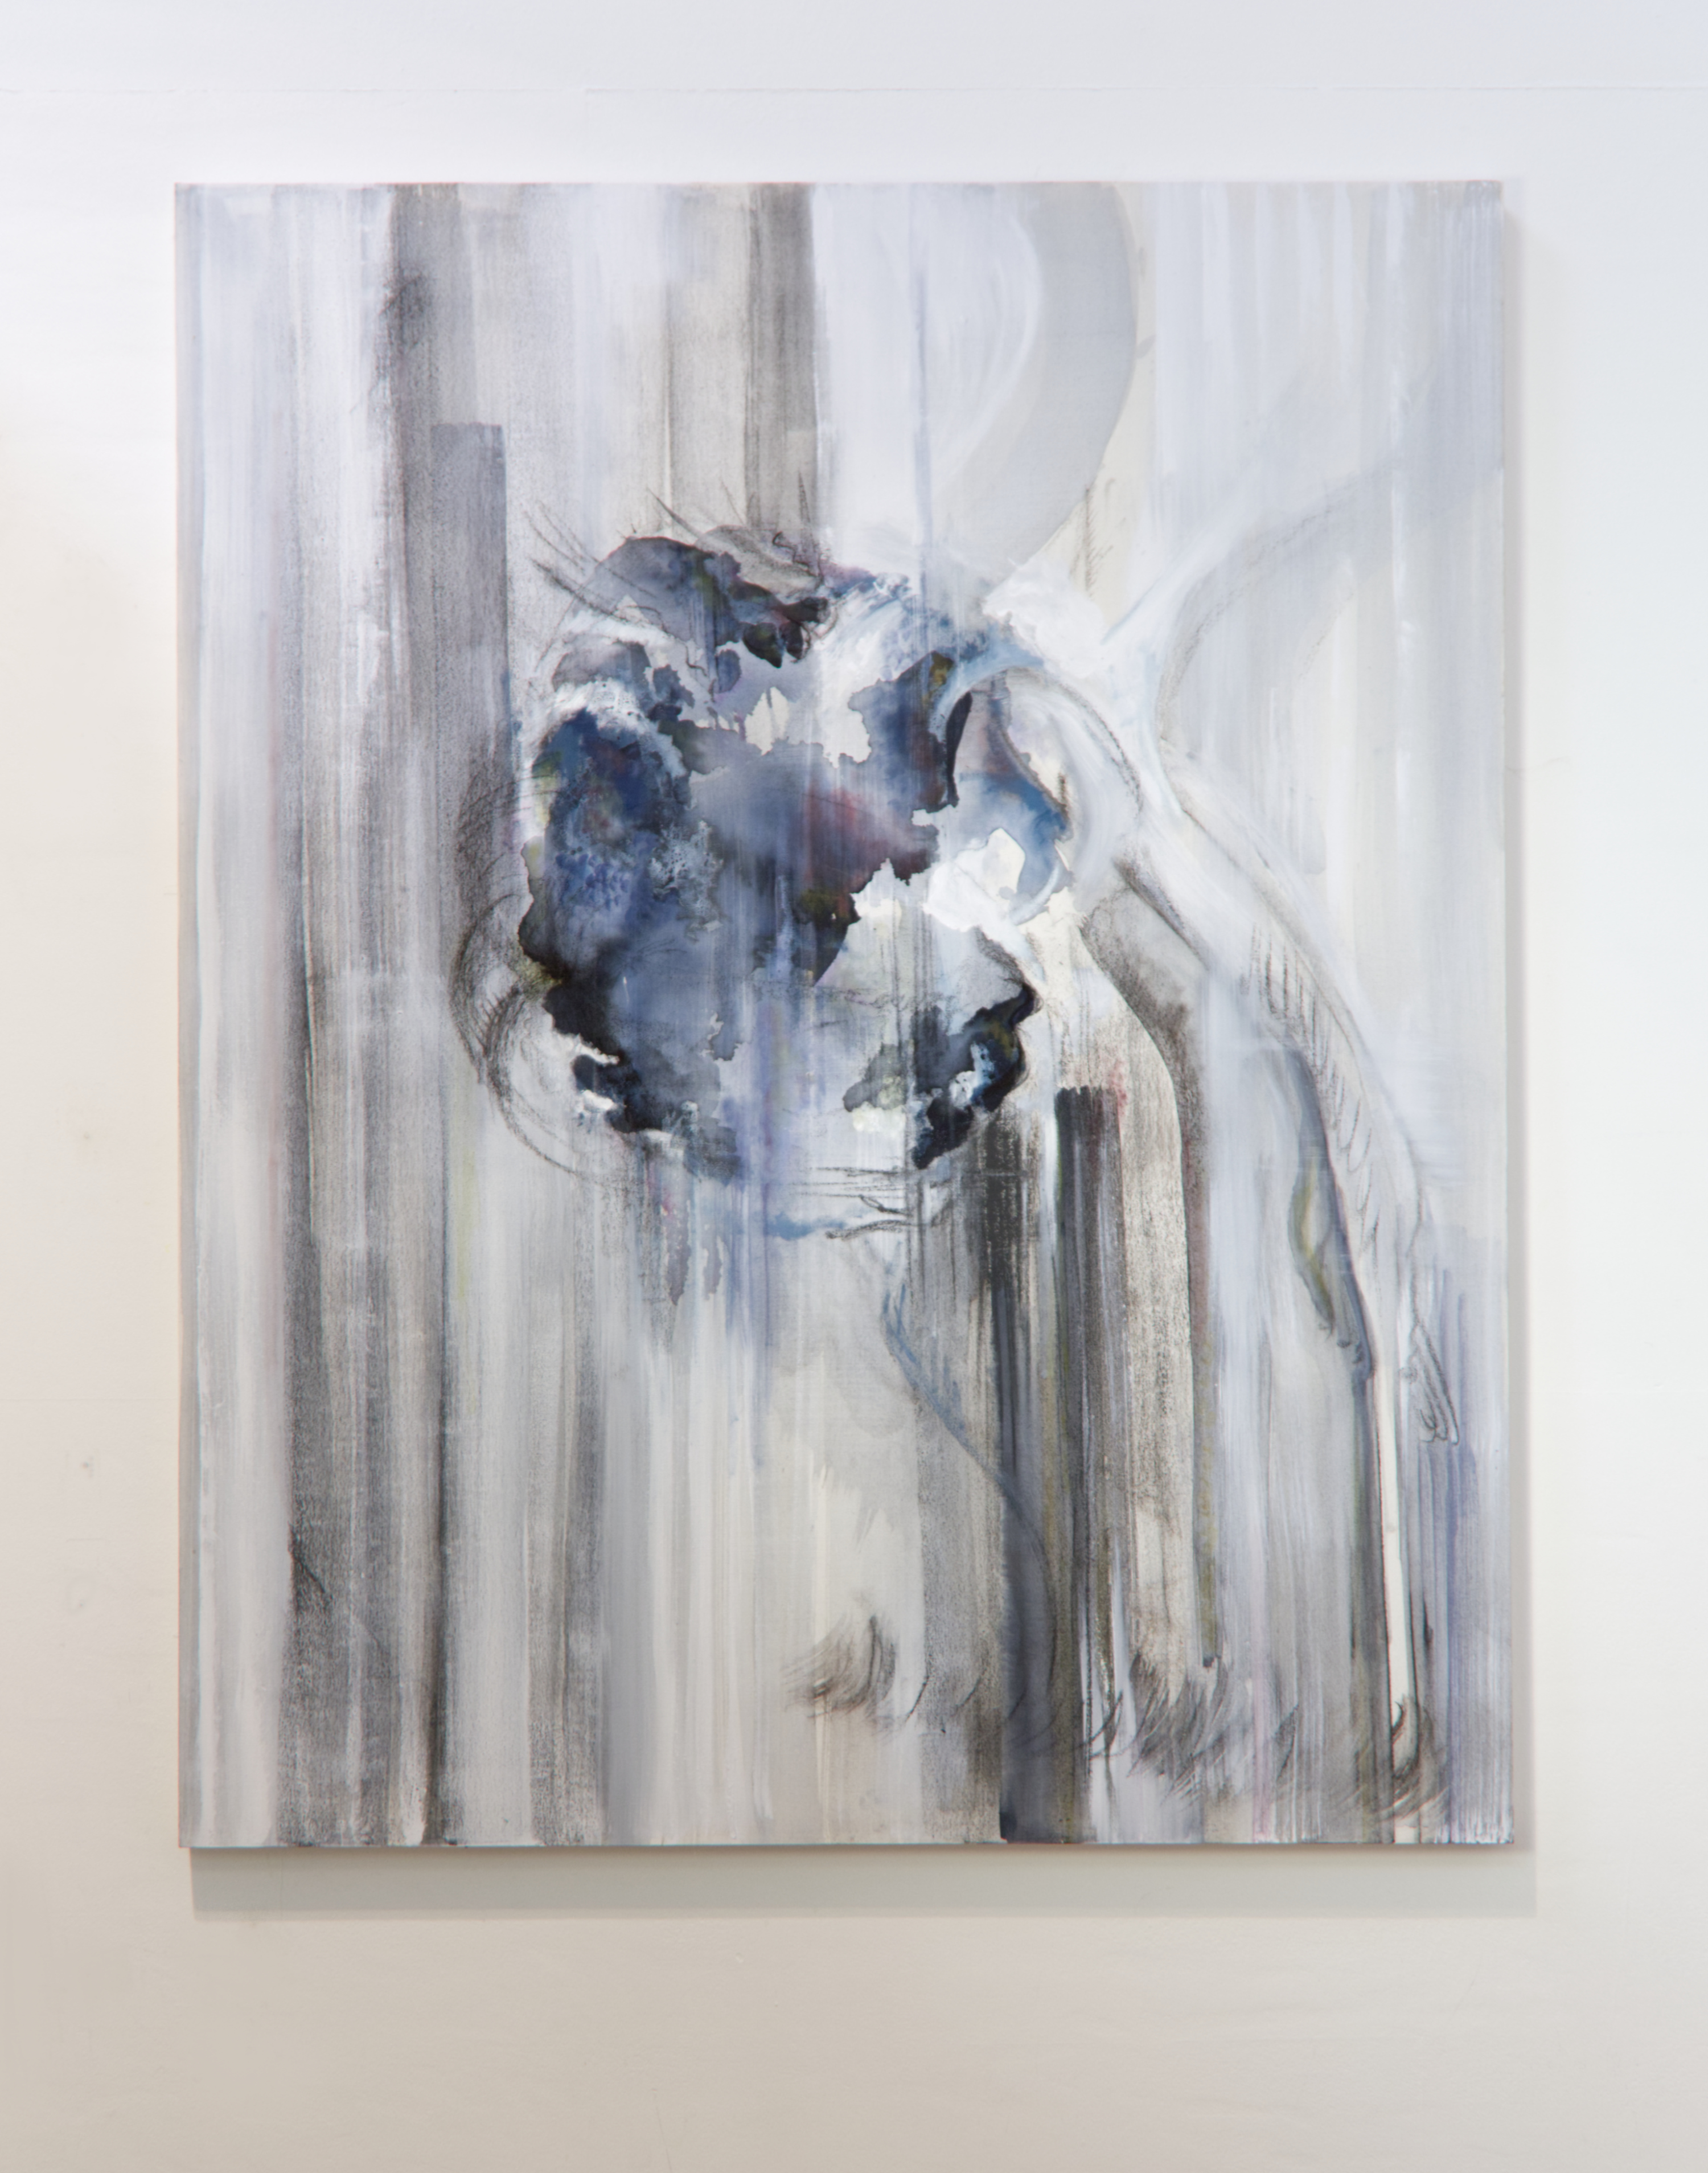 A painting mounted on a white wall. The painting is light and has dominant vertical brush strokes. In the centre is a globular form in bleeding inks and charcoal.